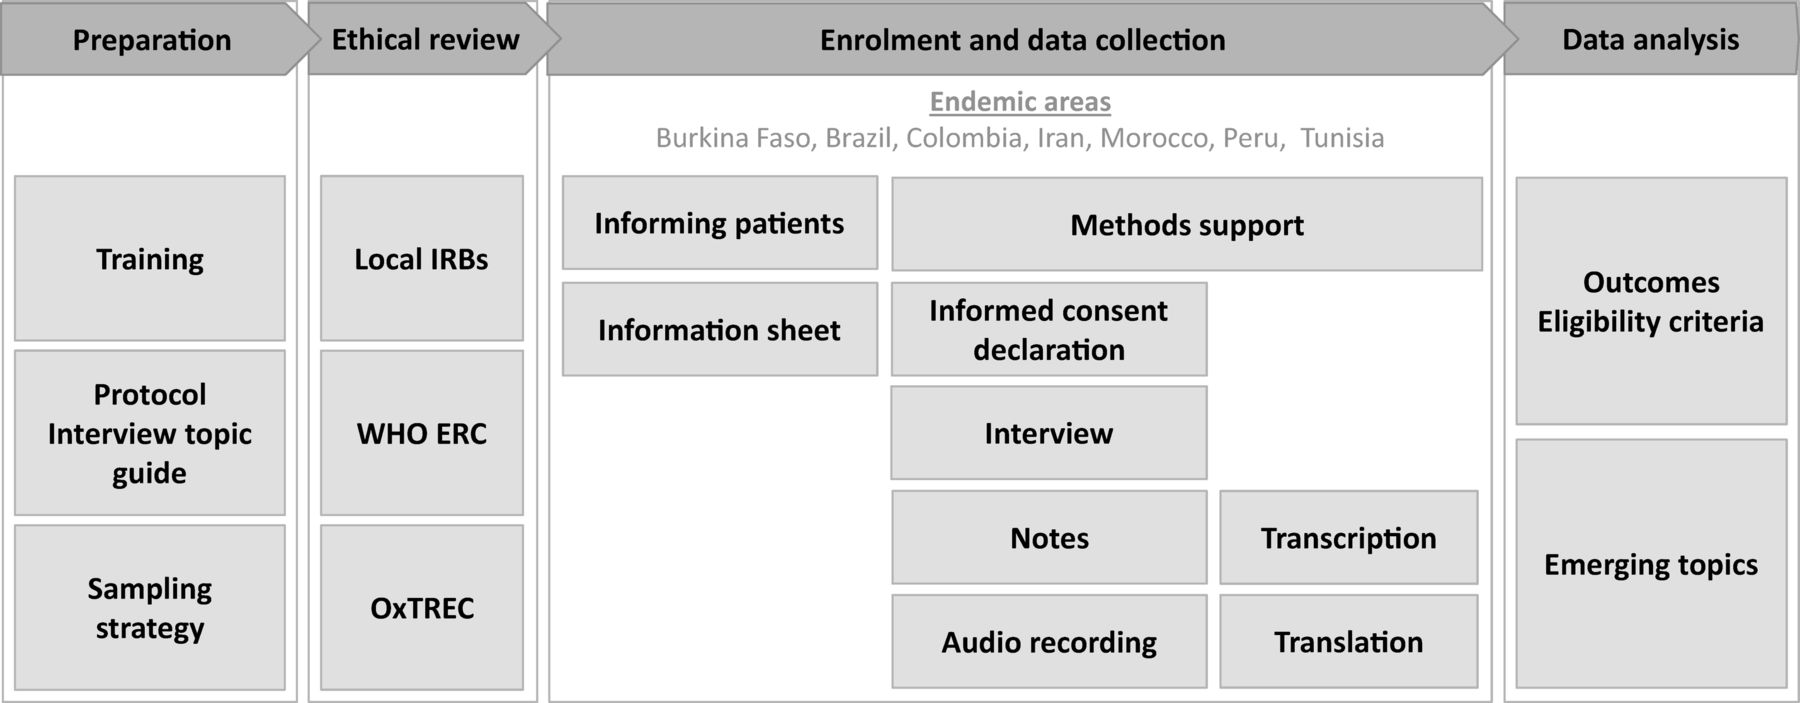 An international qualitative study exploring patients' experiences